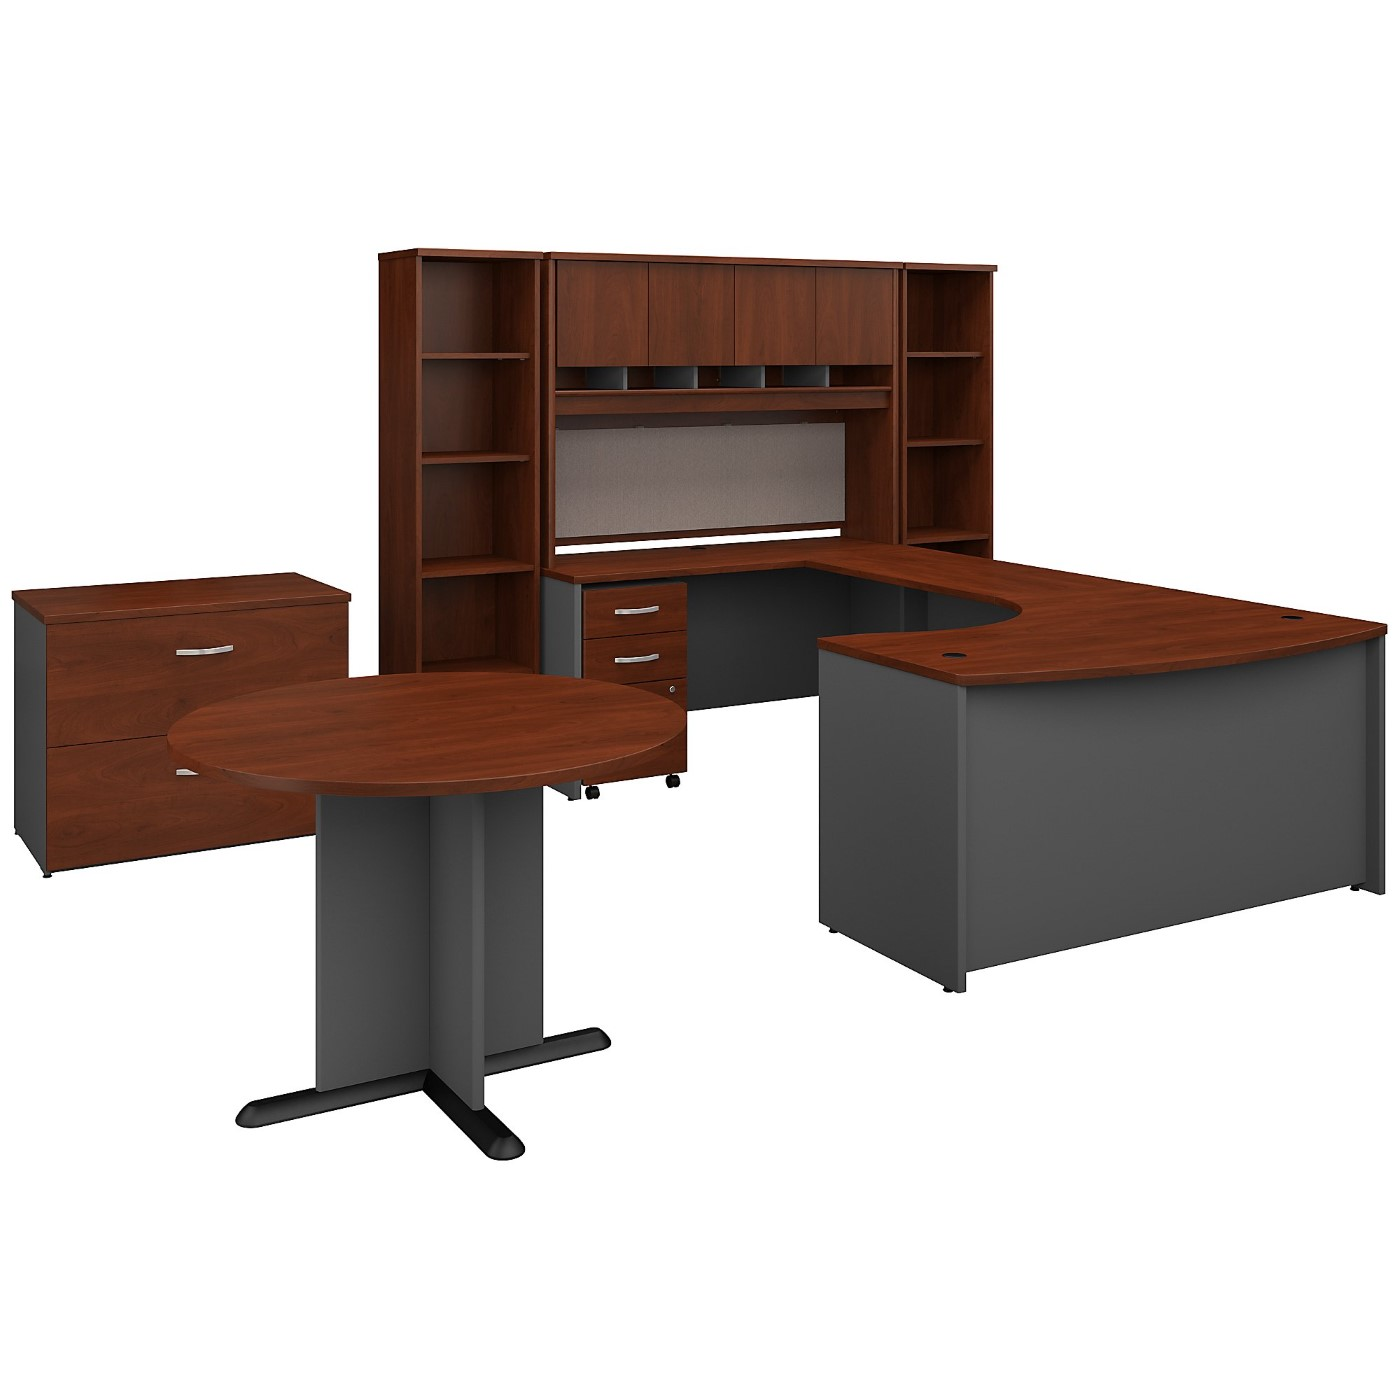 BUSH BUSINESS FURNITURE SERIES C 60W LEFT HANDED BOW FRONT U SHAPED DESK WITH STORAGE AND CONFERENCE TABLE. FREE SHIPPING